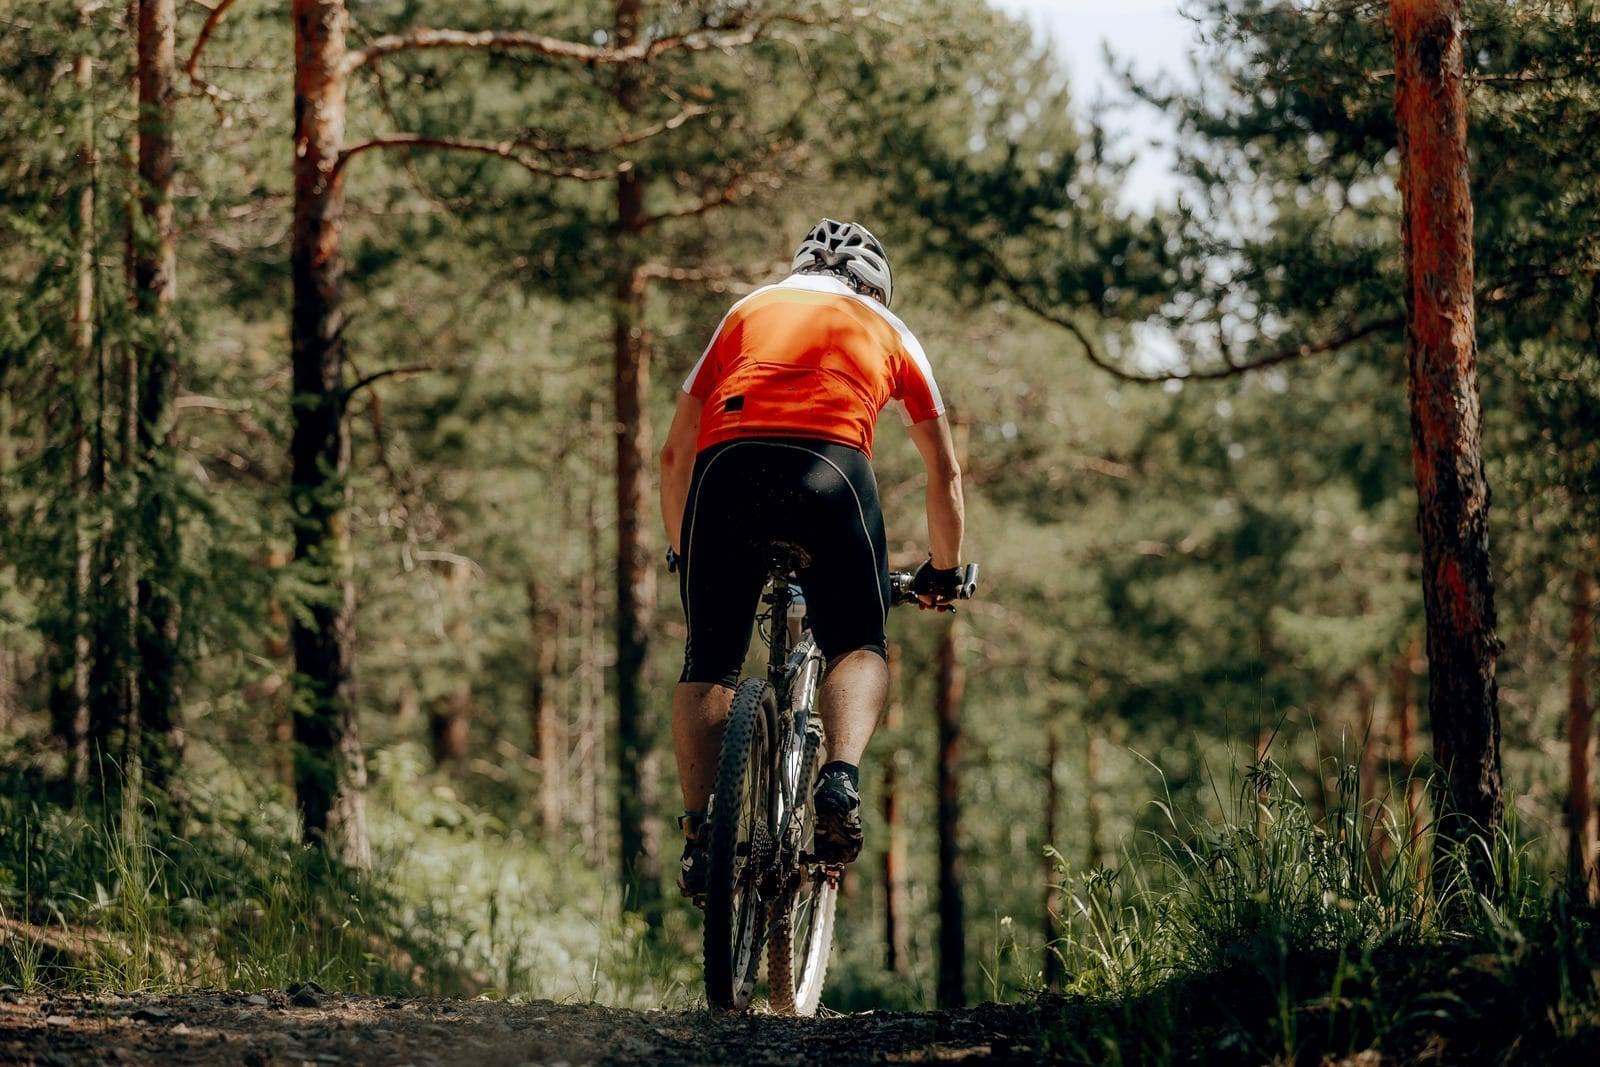 Best Hollywood bike trails for beginners